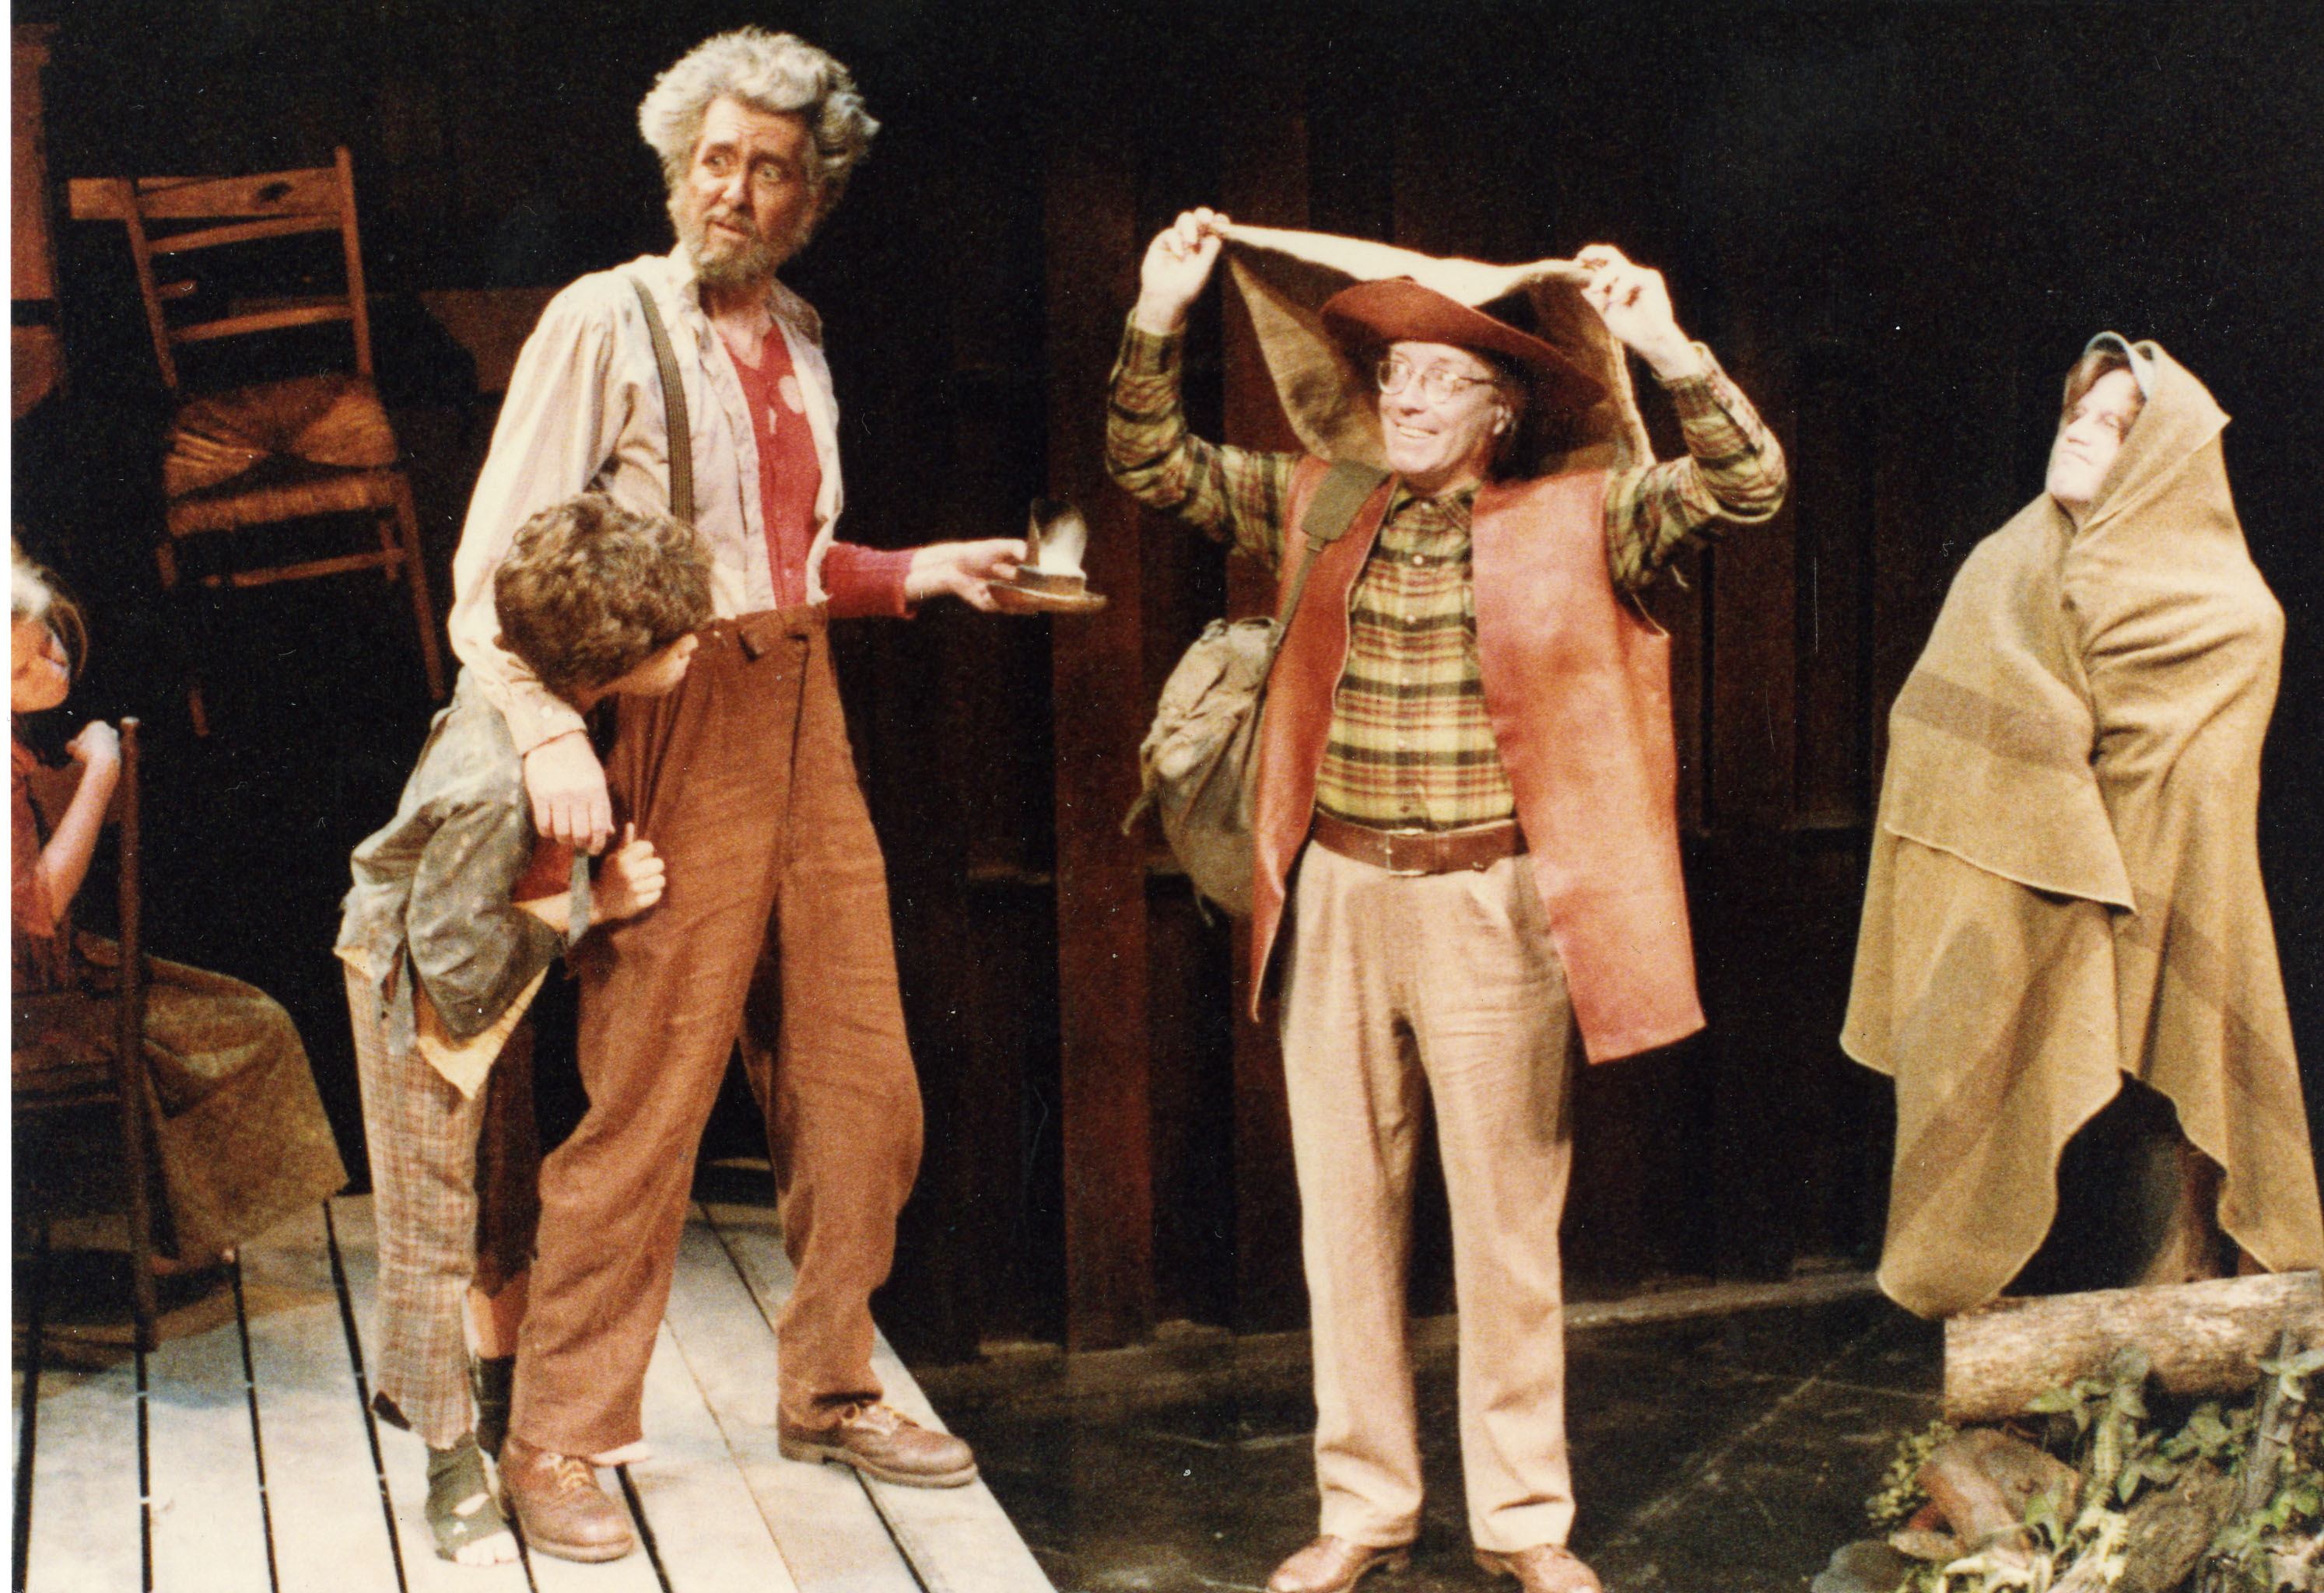 Photograph of the 1986 production of <em>Why The Lord Come To Sand Mountain</em> by the Storefront Theatre